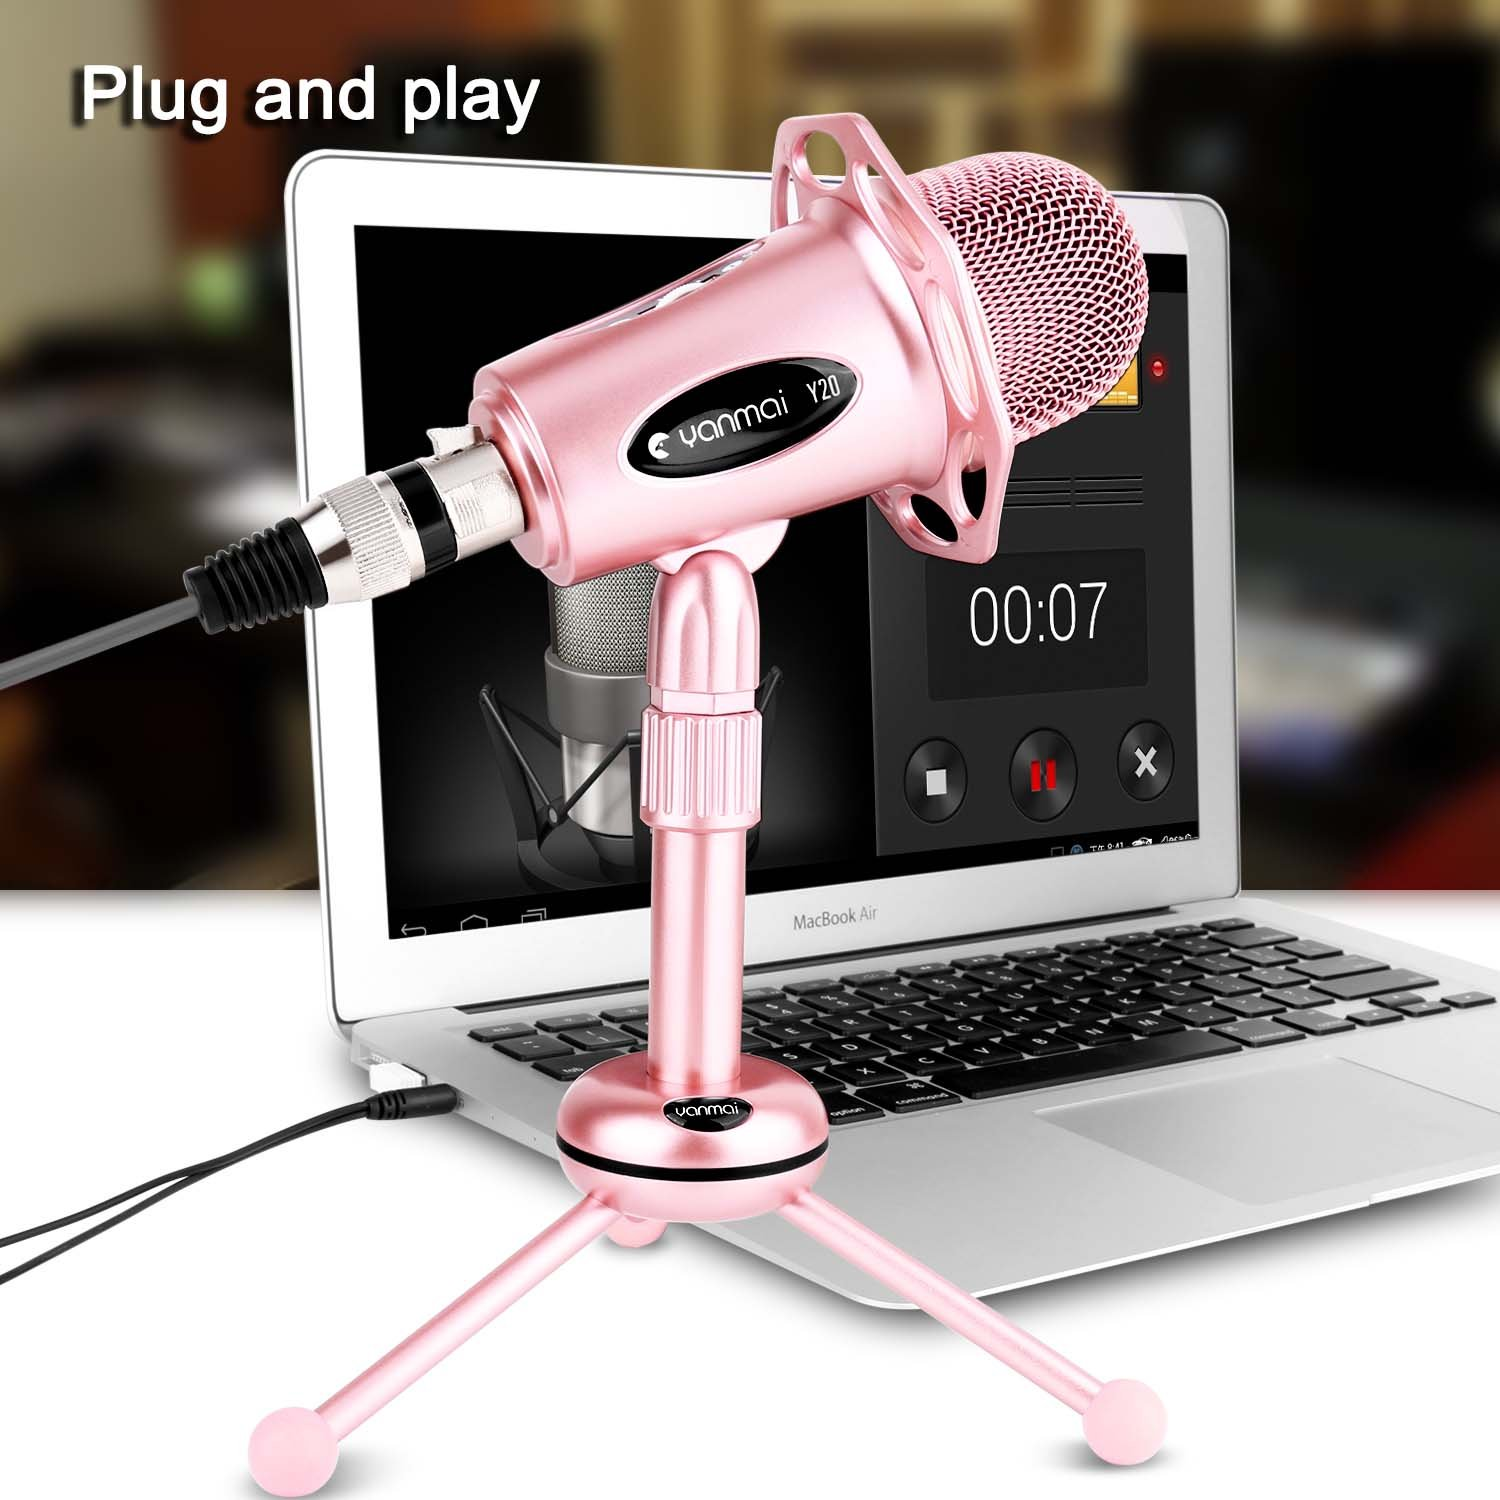 Professional Condenser Microphone, Venoro Plug & Play Home Studio Condenser Microphone with Tripod for PC, Computer, Phone for Studio Recording, Skype, Games, Podcast, Broadcasting (Rose Gold) ... by Venoro (Image #6)